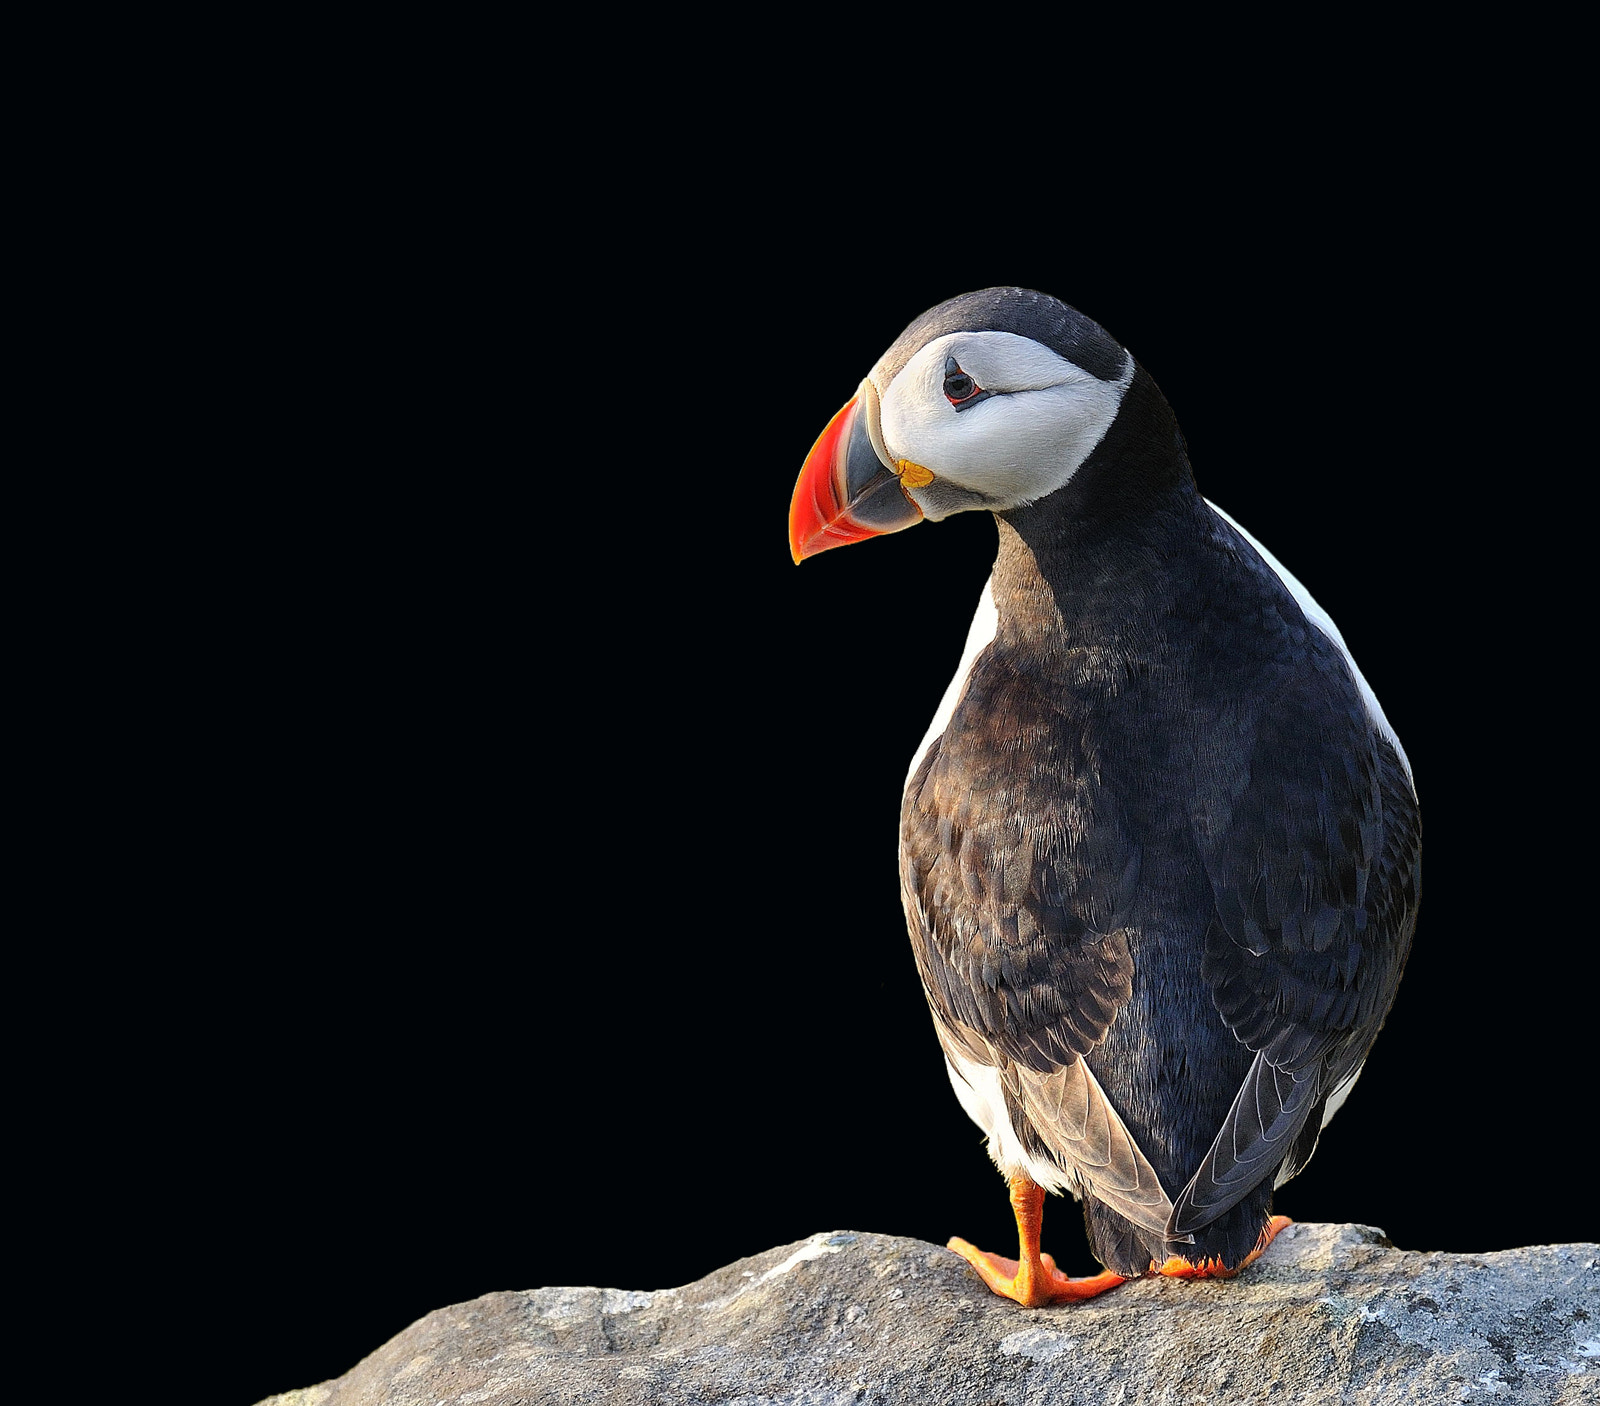 Photograph Puffin by Ronnie Bergström on 500px